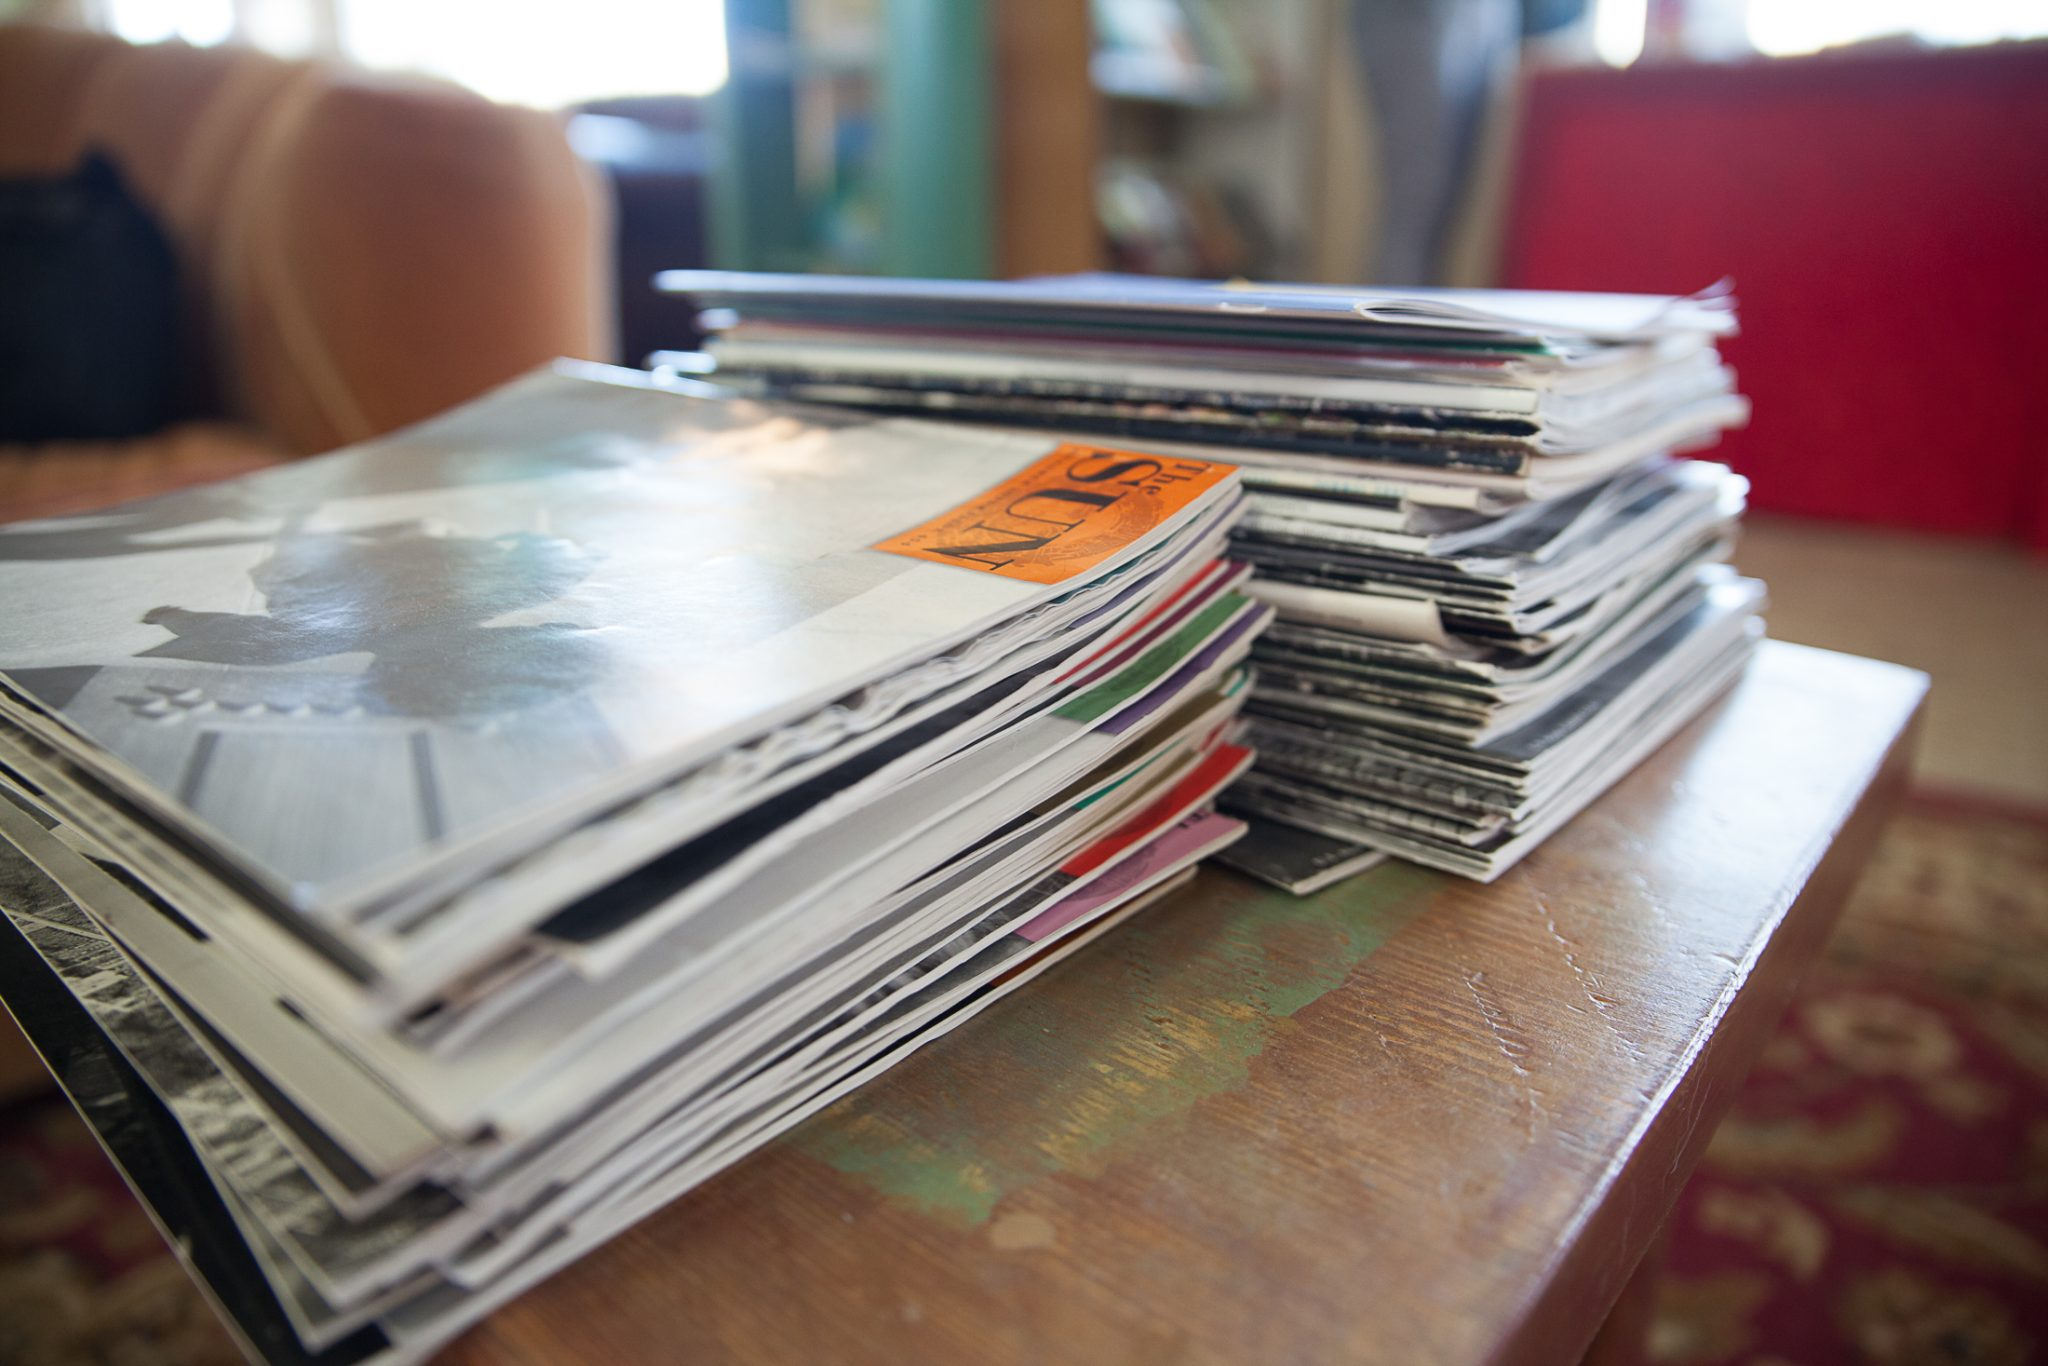 A stack of magazines atop a wooden table at SOMOS in Taos, New Mexico.